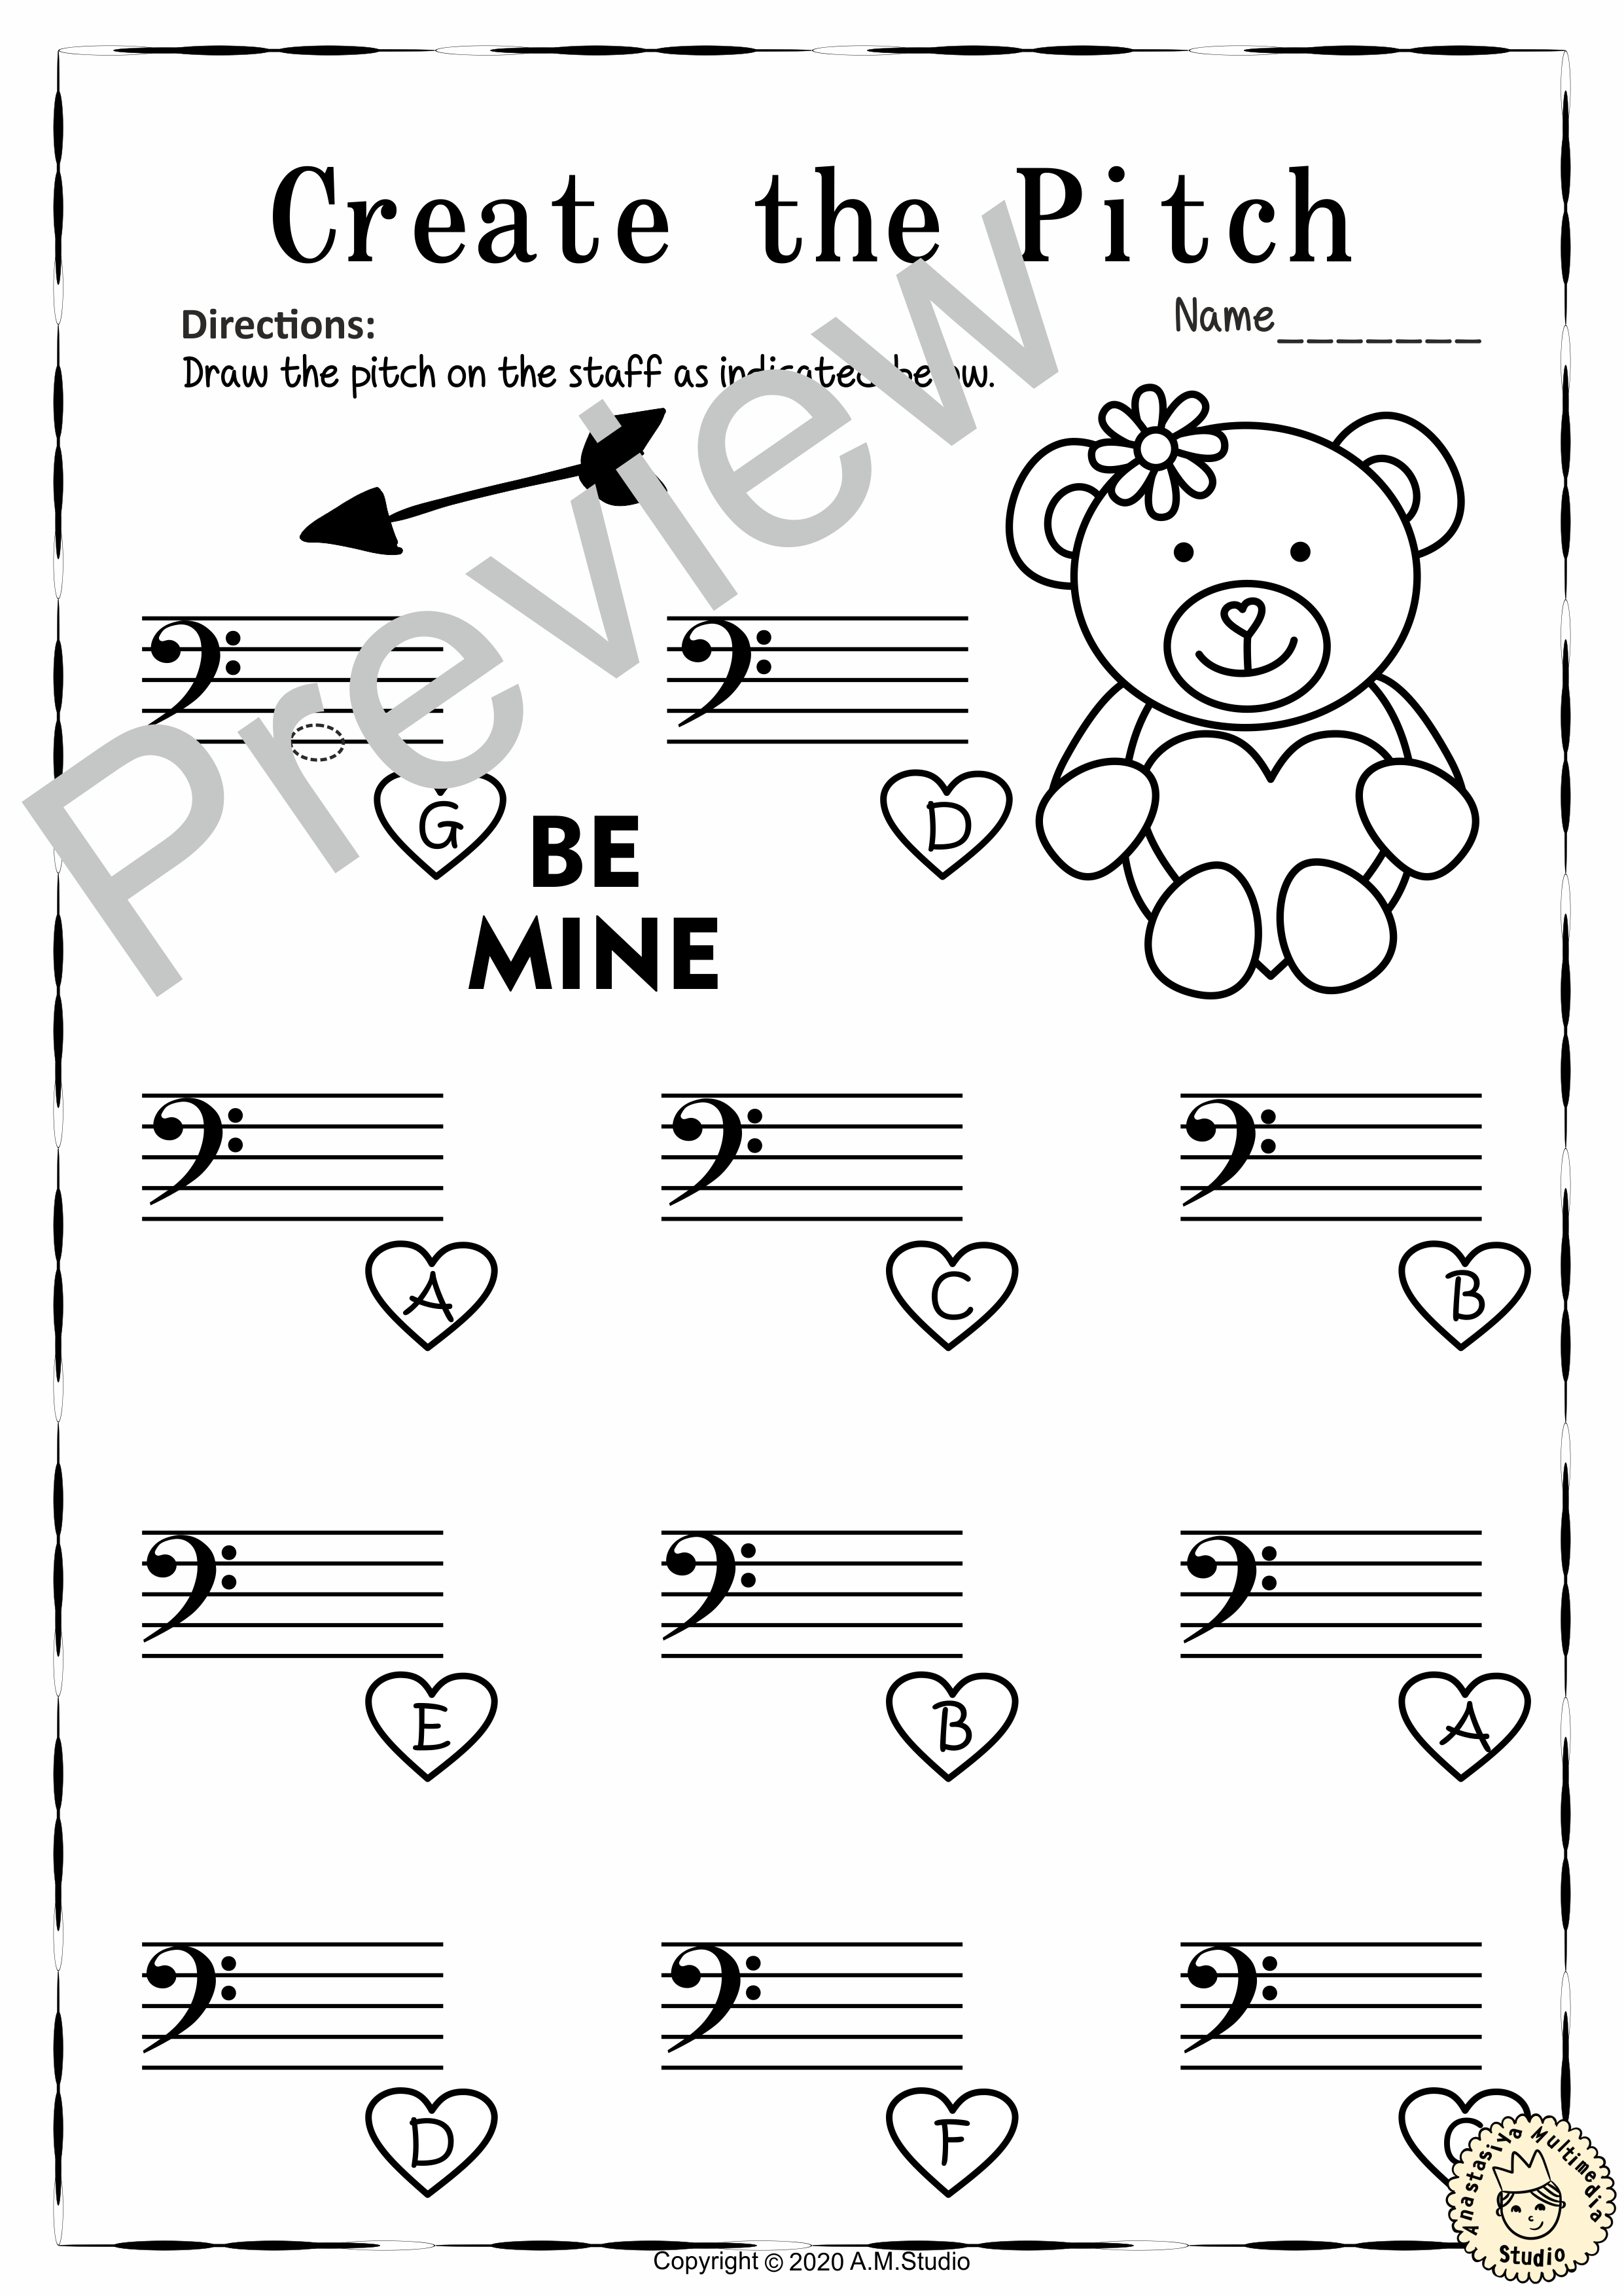 This Set Of 12 Music Worksheets Valentine S Day Themed Is Designed To Help Your Students Practice Identifying Music Worksheets Bass Clef Notes Music Education